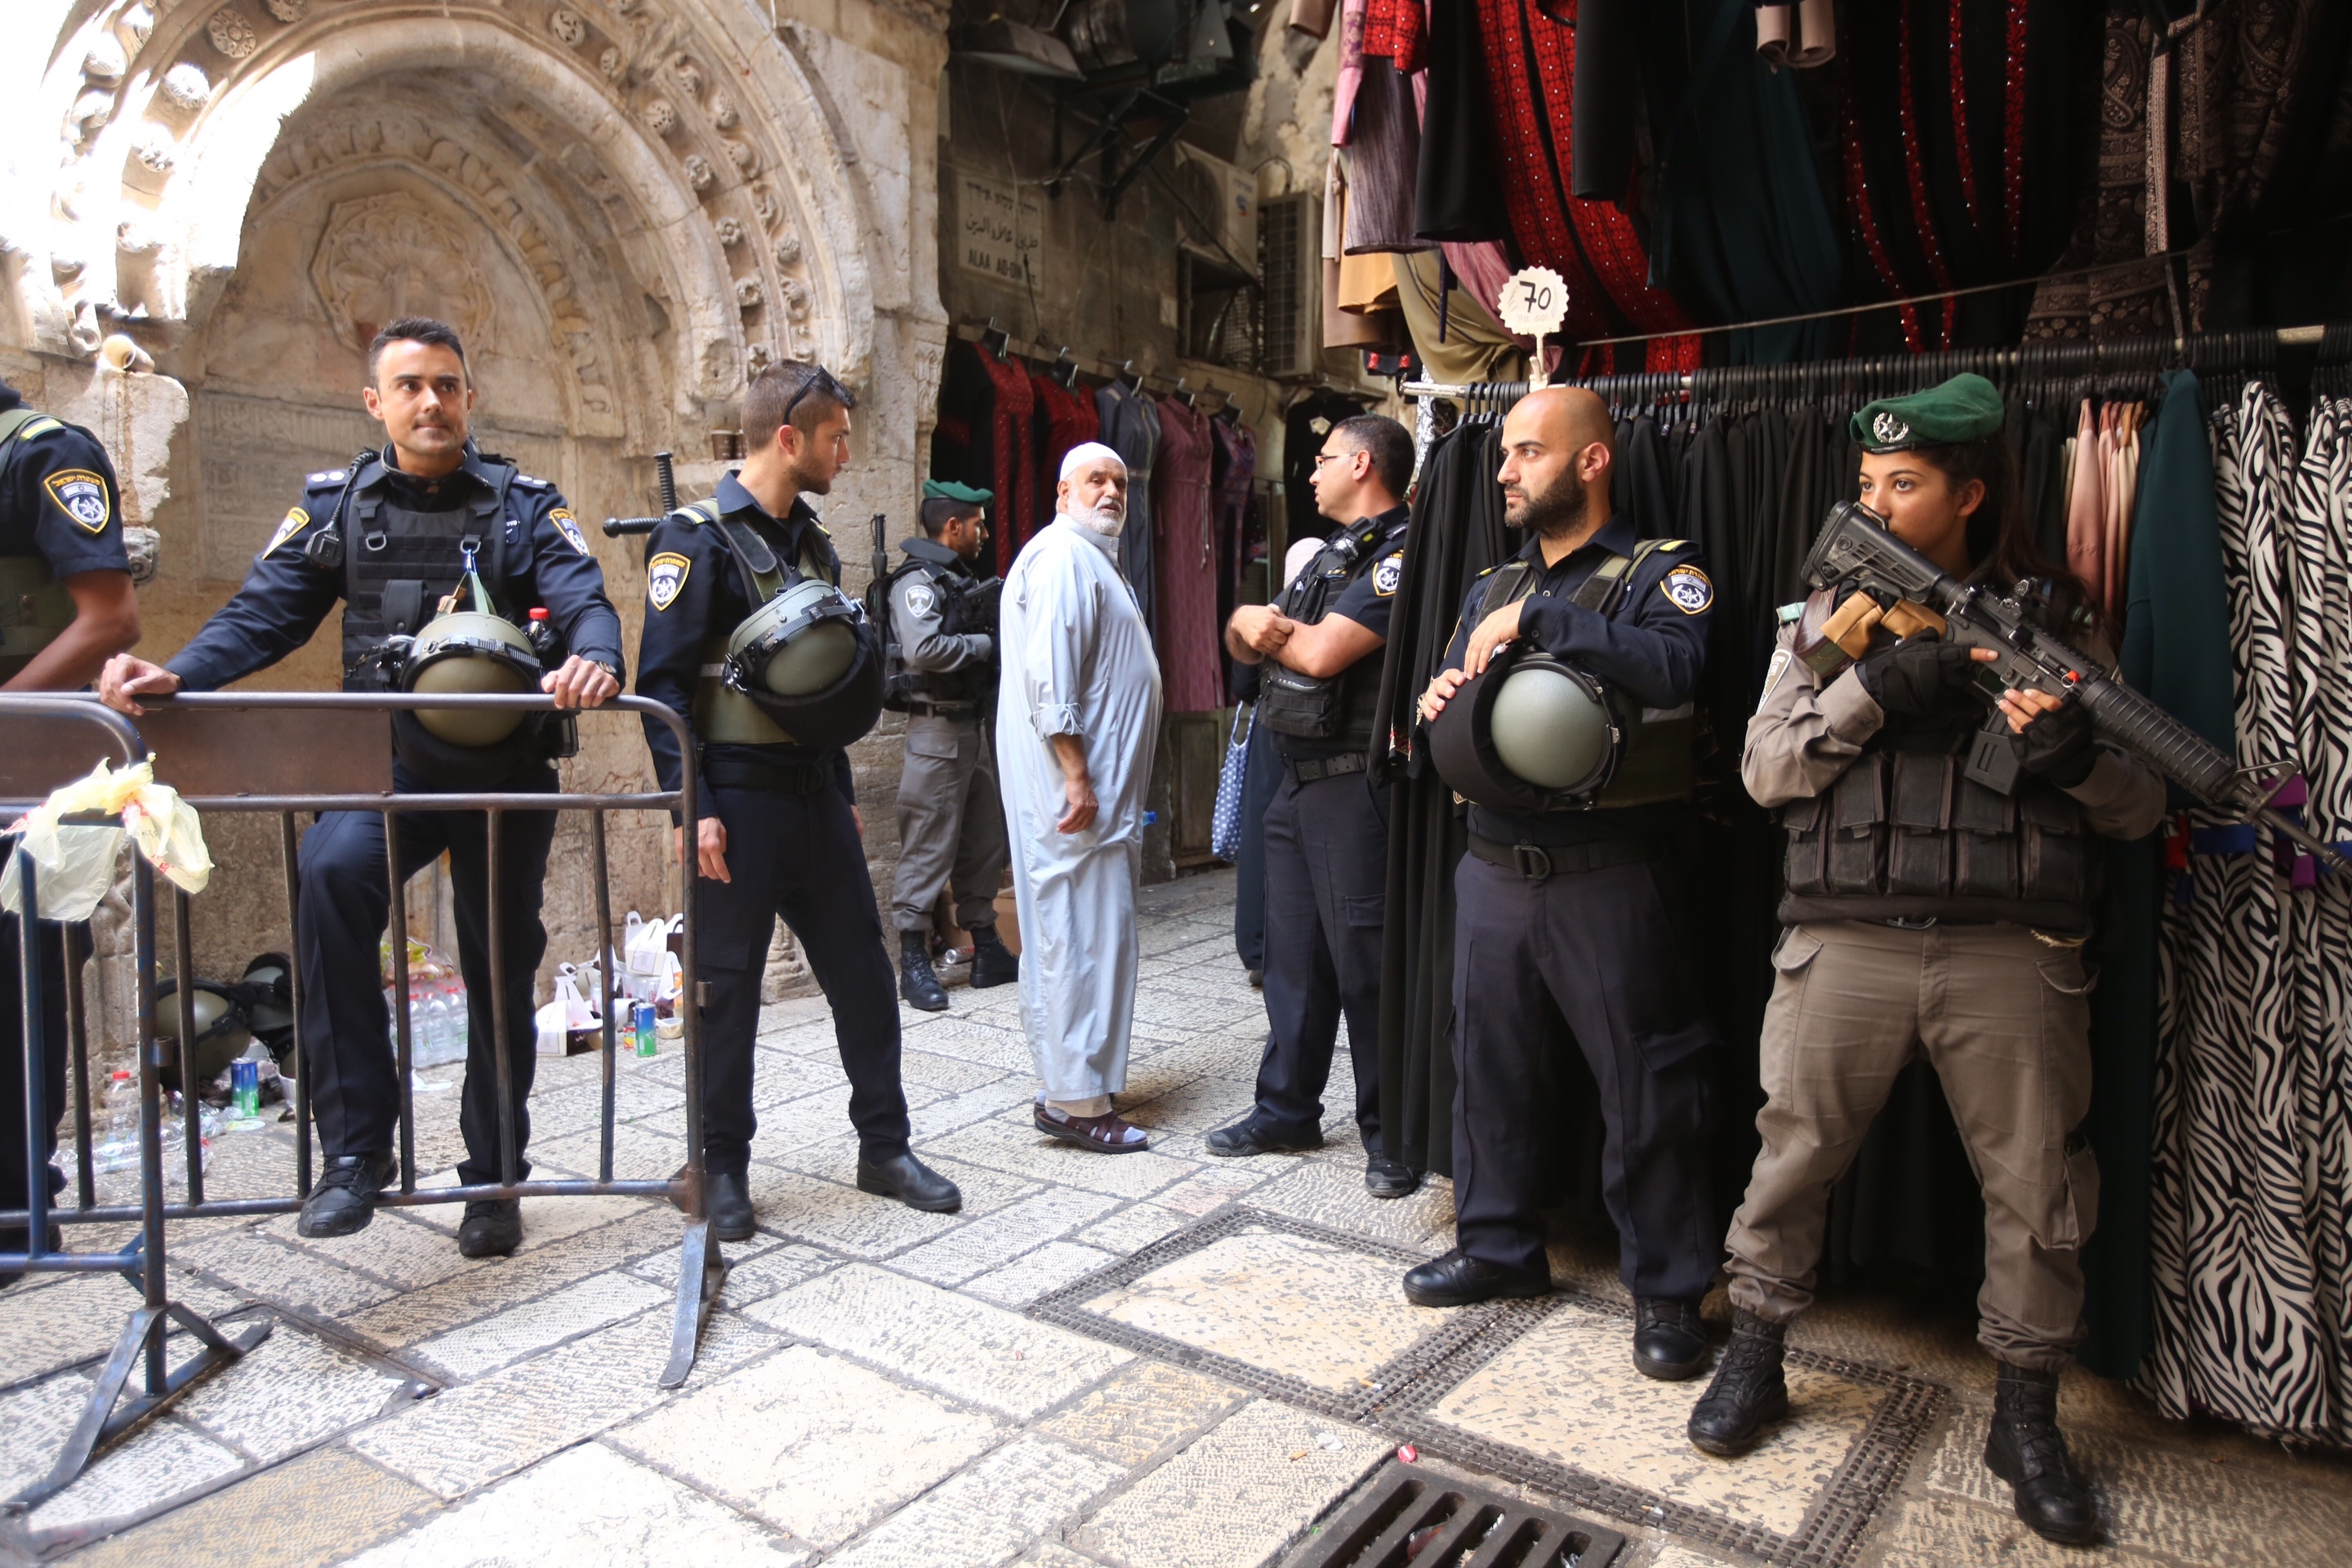 Israeli security on high alert at the Old City of Jerusalem, July 28, 2017 (Marc Israel Sellem)